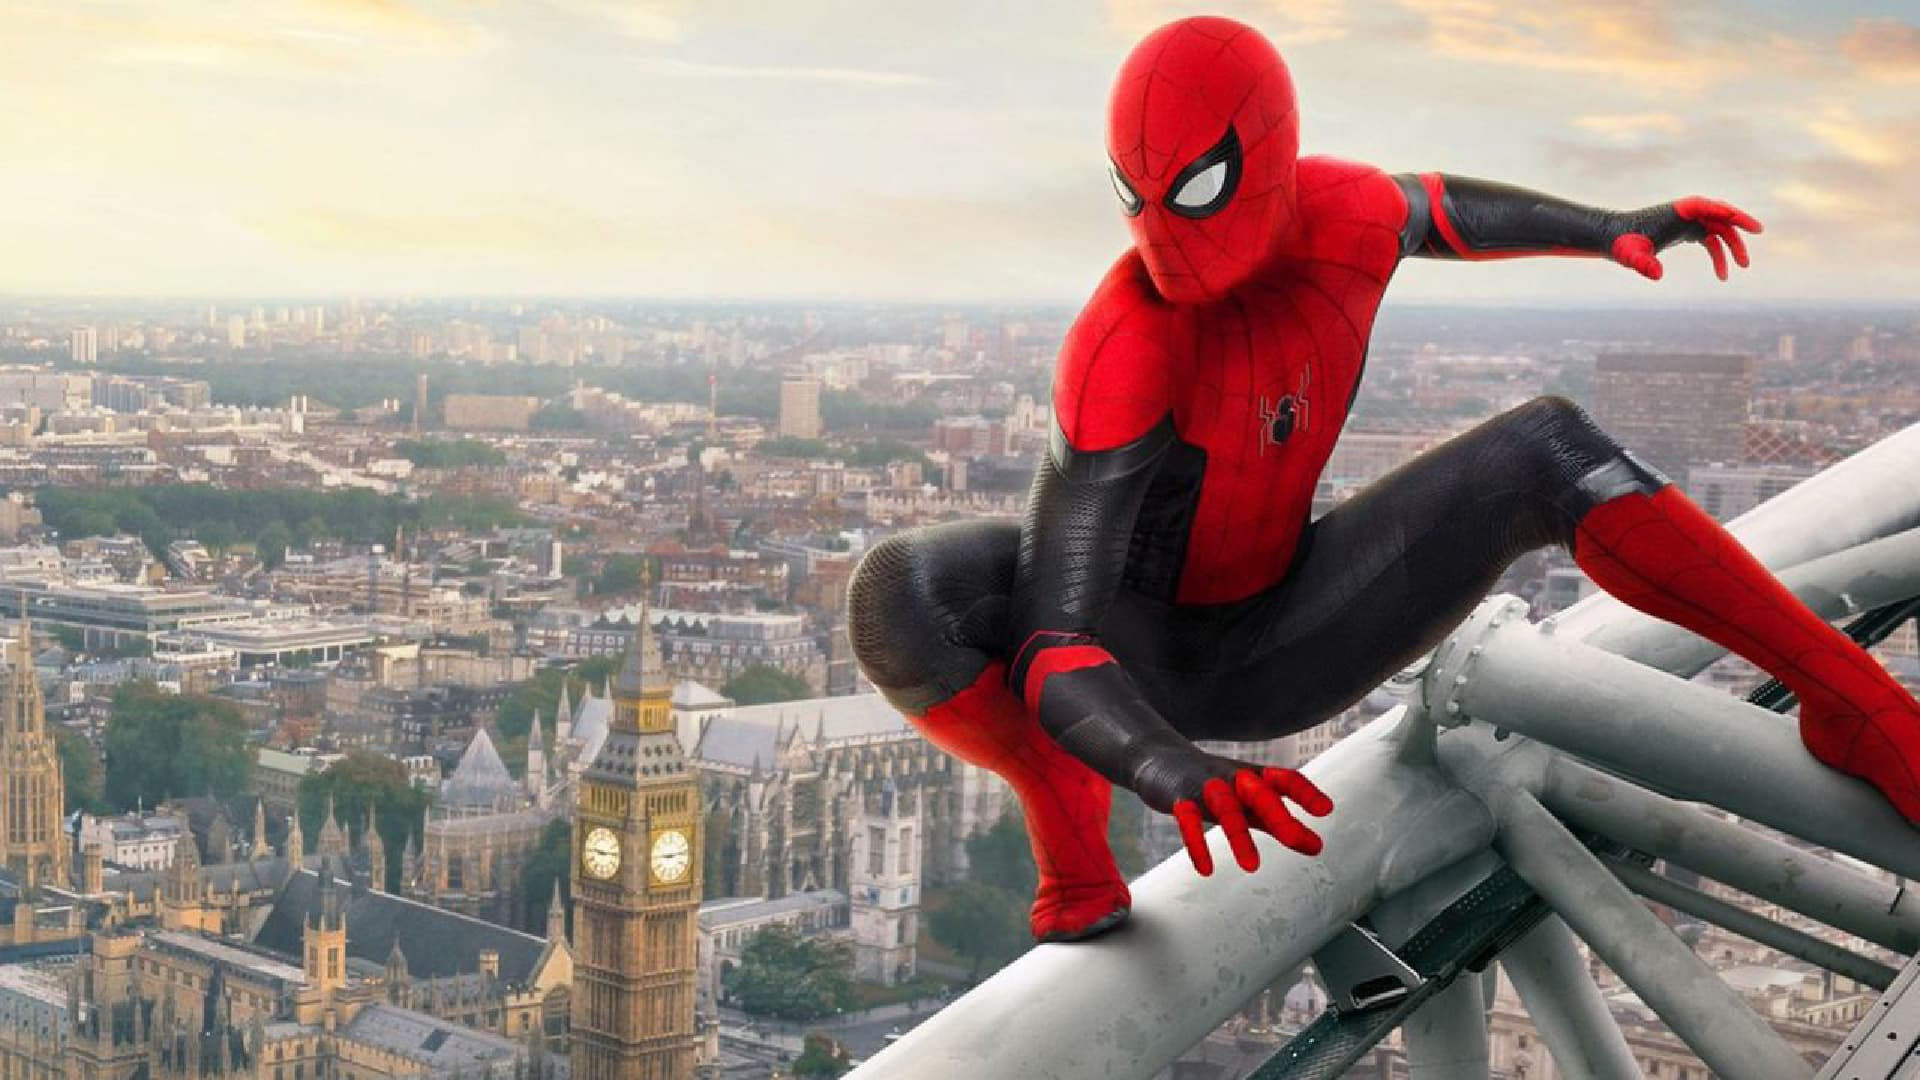 Box Office Usa - Mercoledì da 27 milioni per Spider-Man: Far From Home